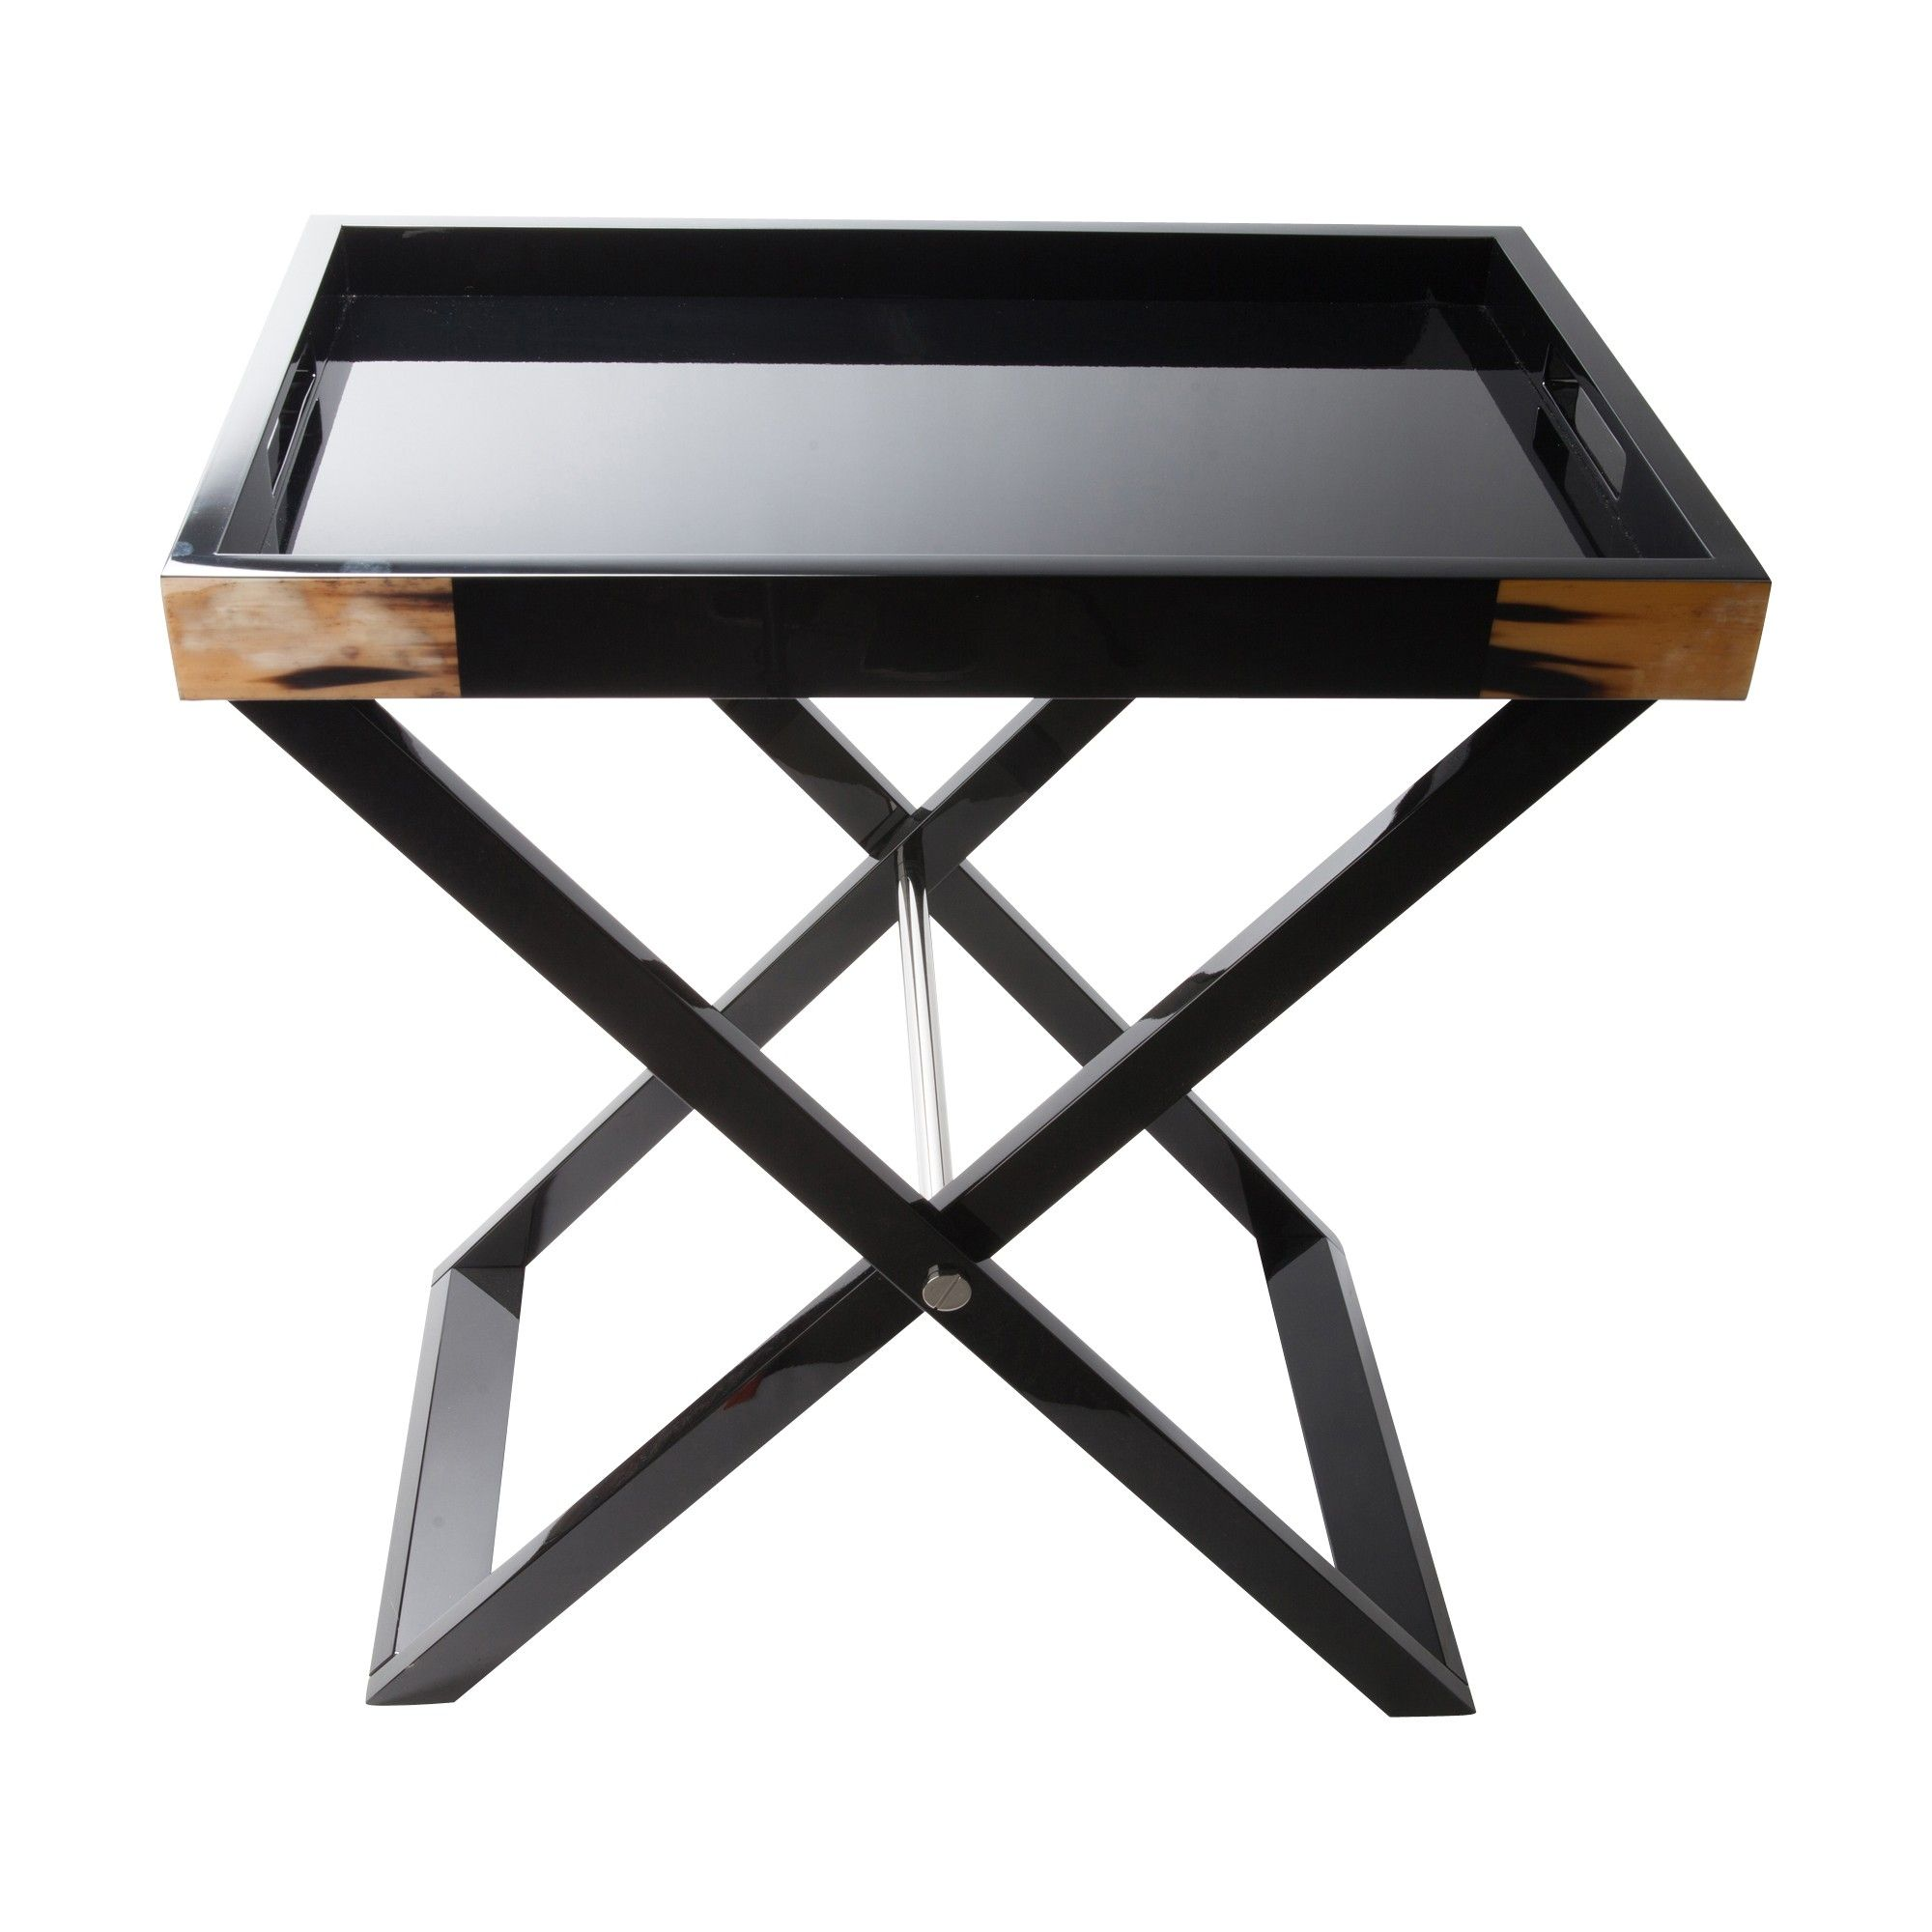 horn and black lacquer butler tray featured accent table cottages gardens kidney bean coffee retro outdoor bench clearance seaside themed lighting pottery barn living room chairs